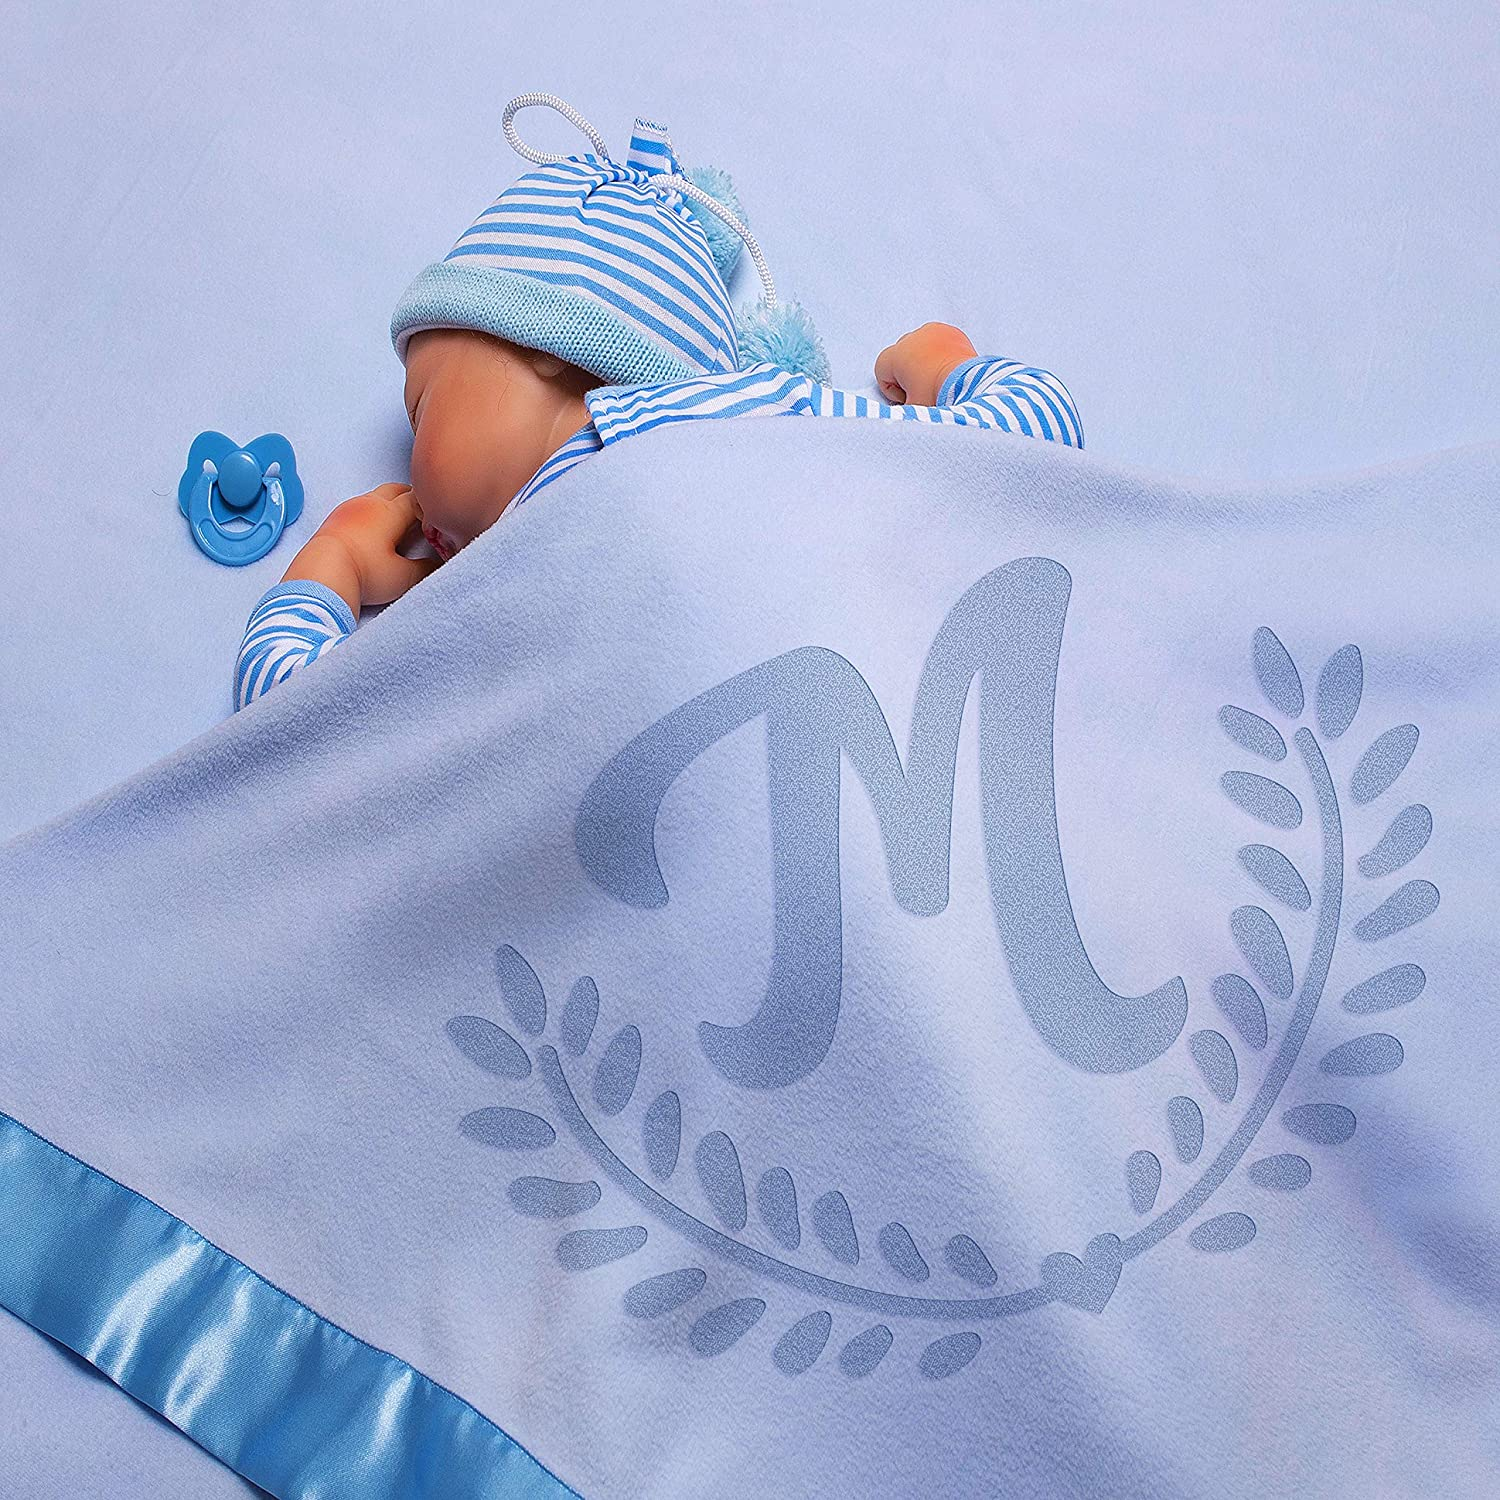 Personalized Baby Blankets w/Name - Large Baby Receiving Blanket - 36x36 in | Satin Trim, Fleece | Blue - Baby Boy Gifts, Baby Shower Gift, Baby Stuff, Welcome Baby Gifts for Newborns | Olive Branch